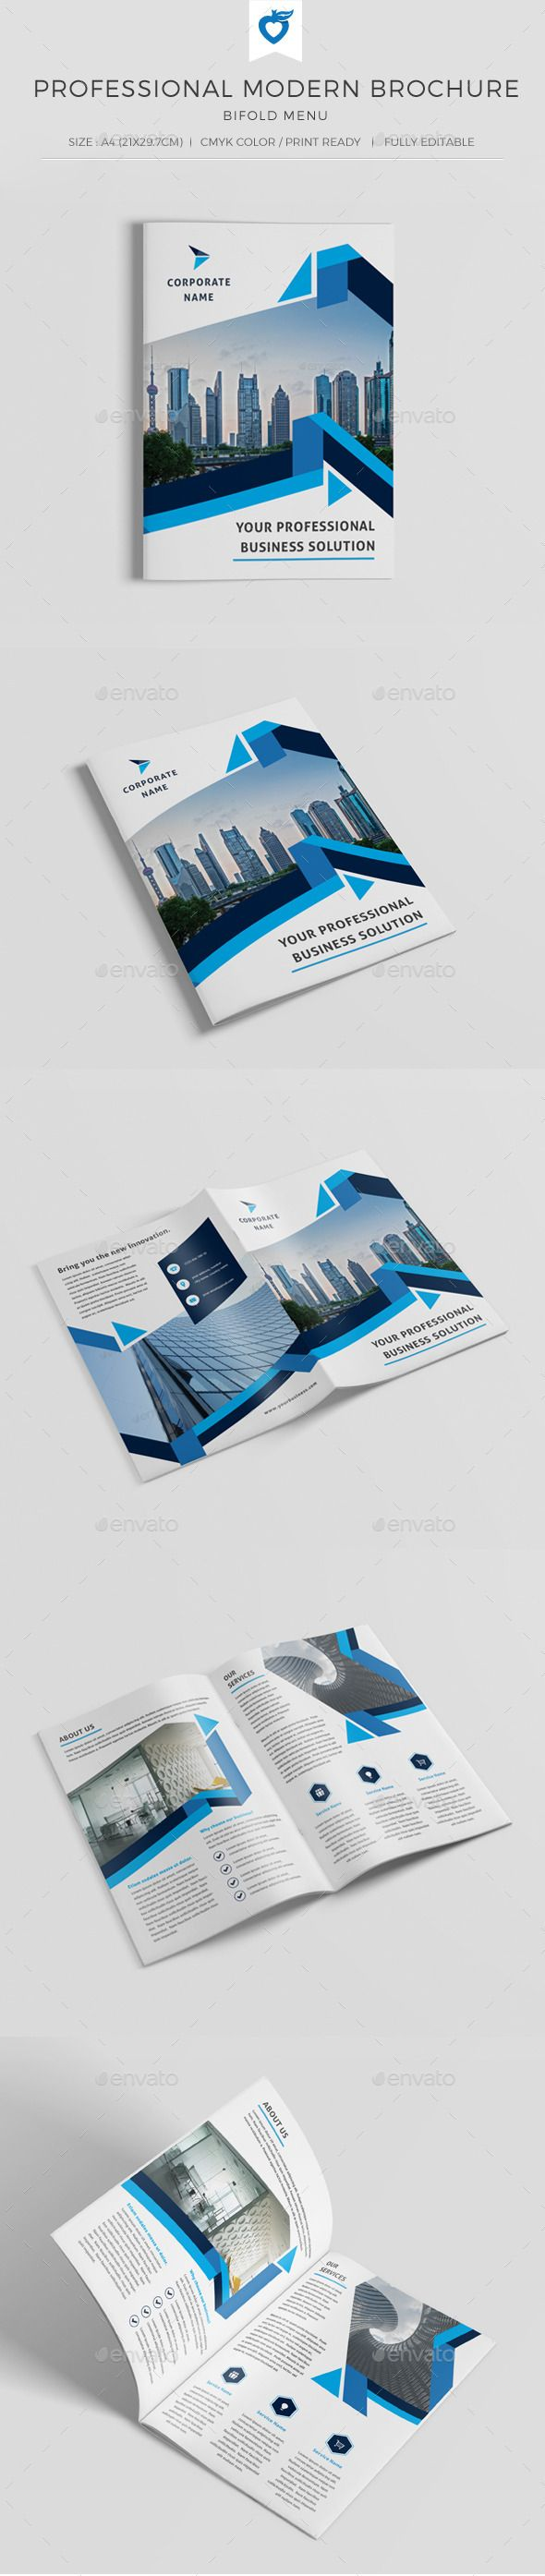 Best Template X Booklet Brochure Images On Pinterest - 11x17 brochure template